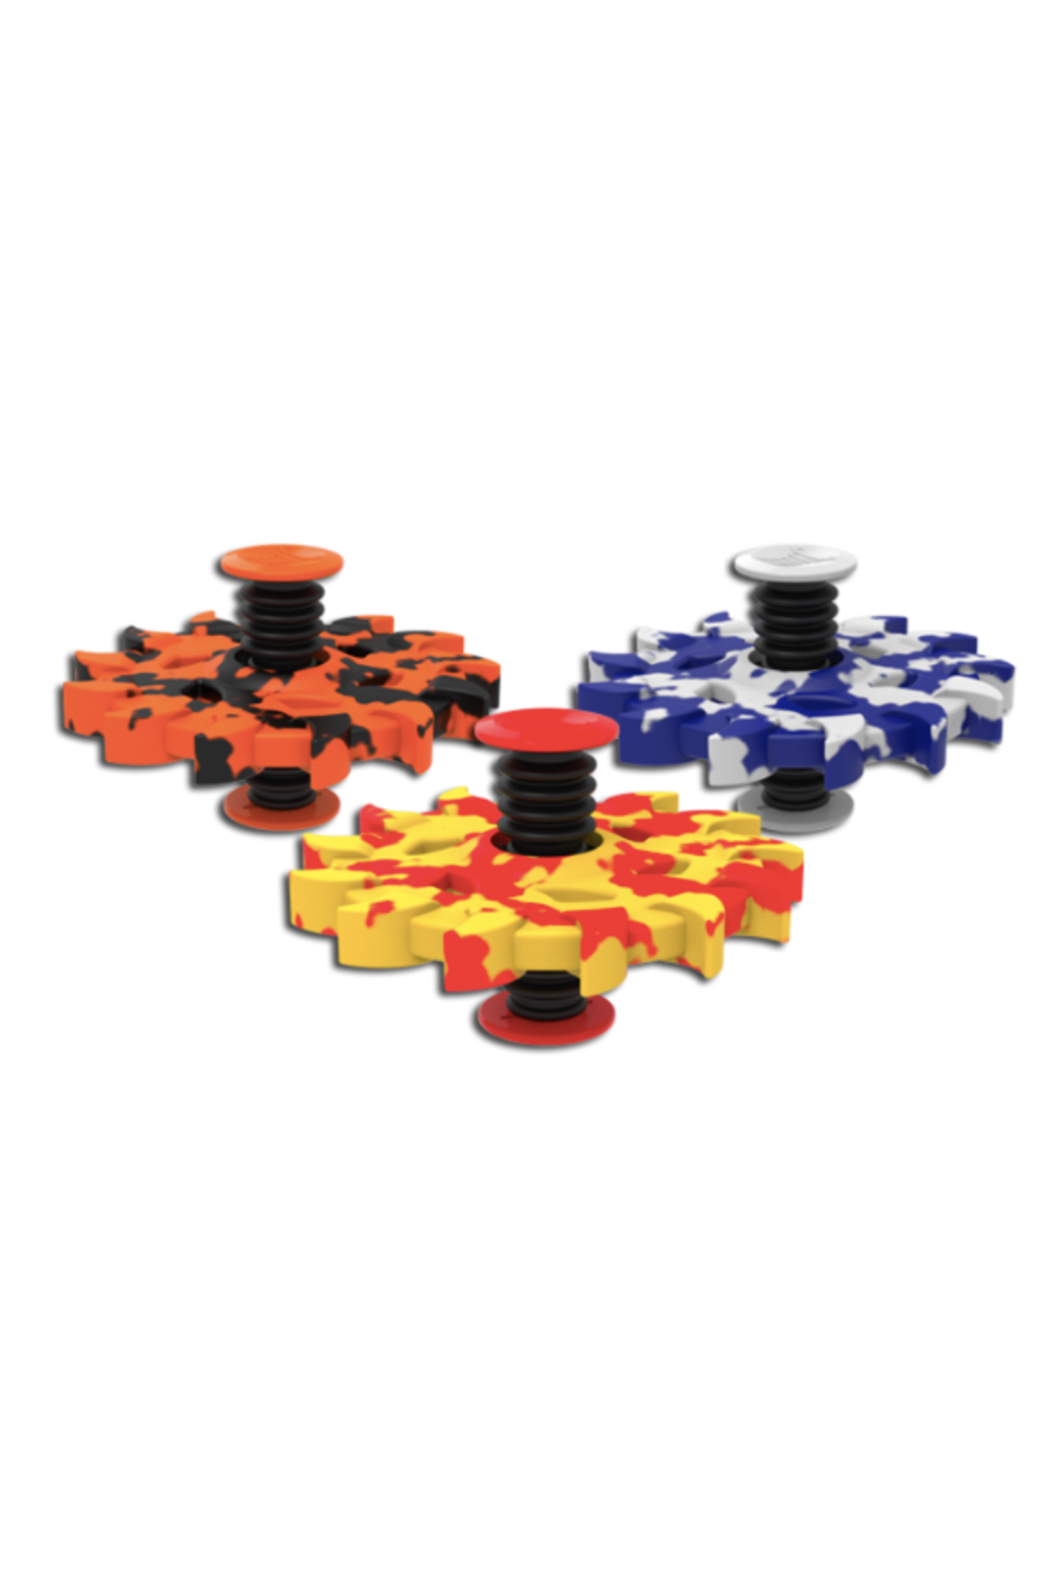 Leading Edge Novelty Spinnobi Shapes - Main Image